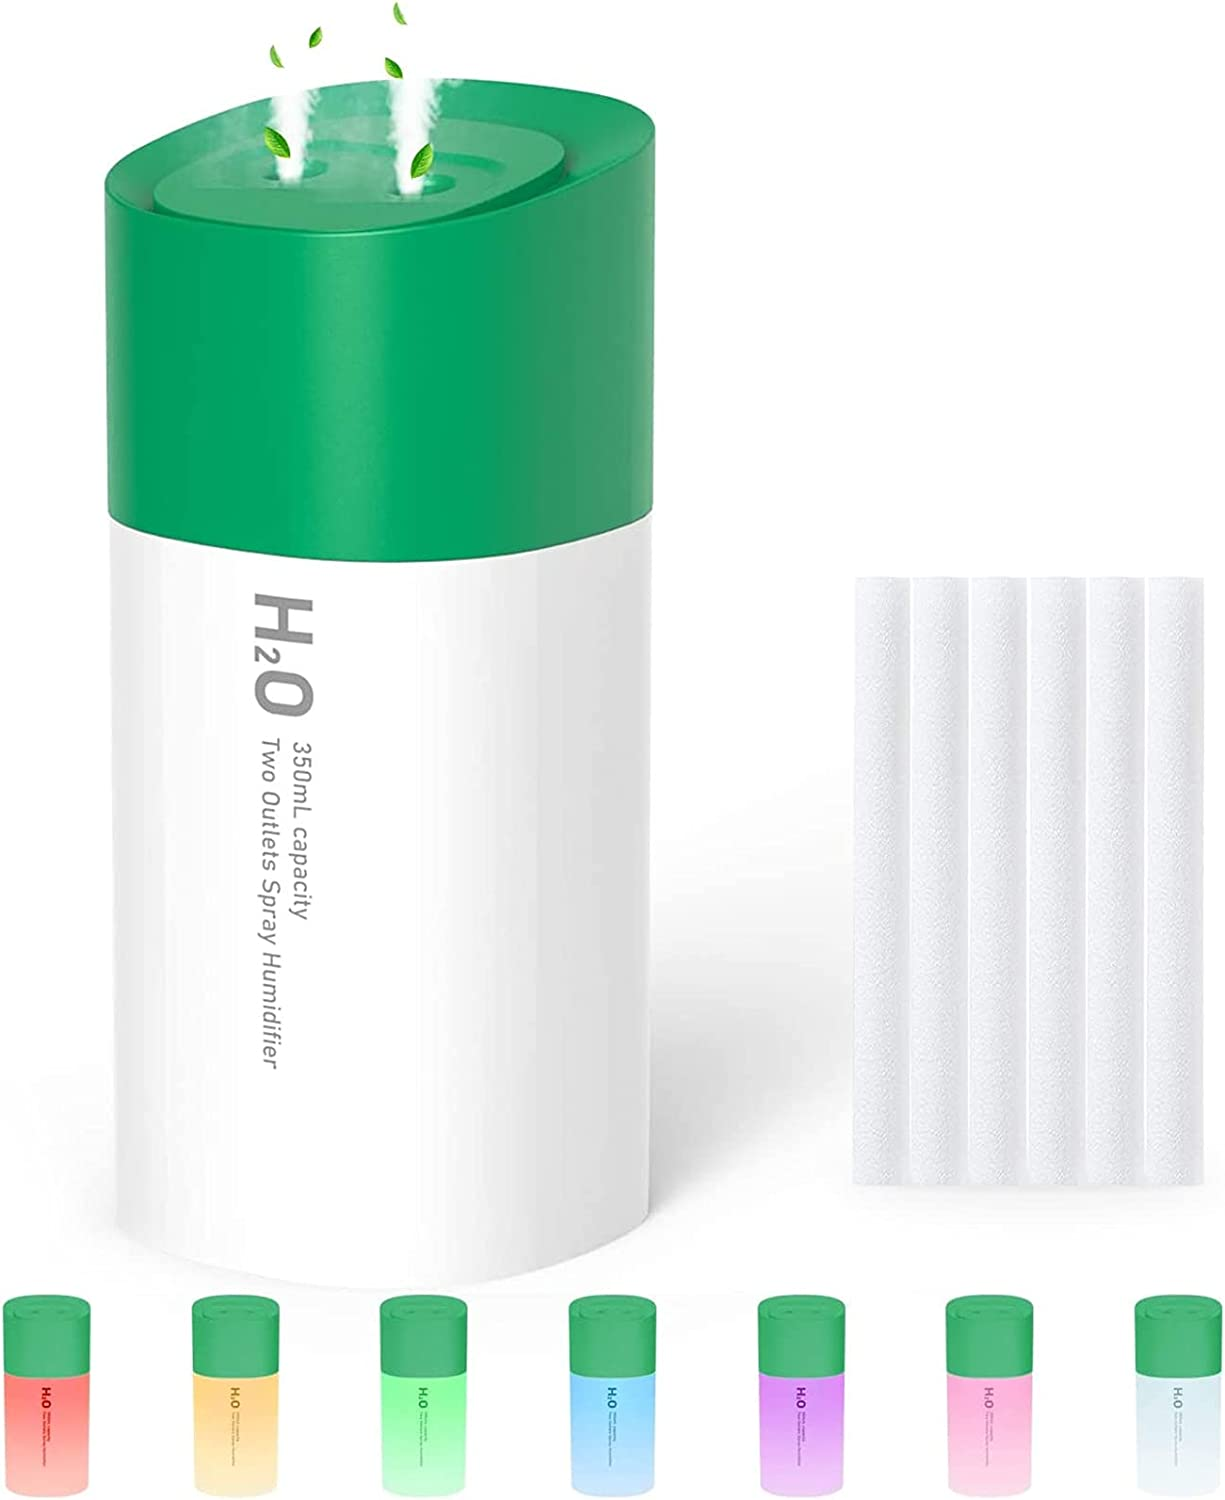 Portable Mini Humidifier Double Spray,350ml Small Cool Mist Humidifier - Quiet USB Personal Desktop Humidifier for Home Baby Bedroom Travel Office and Car,Auto Shut-Off and Night Light Function(Green)